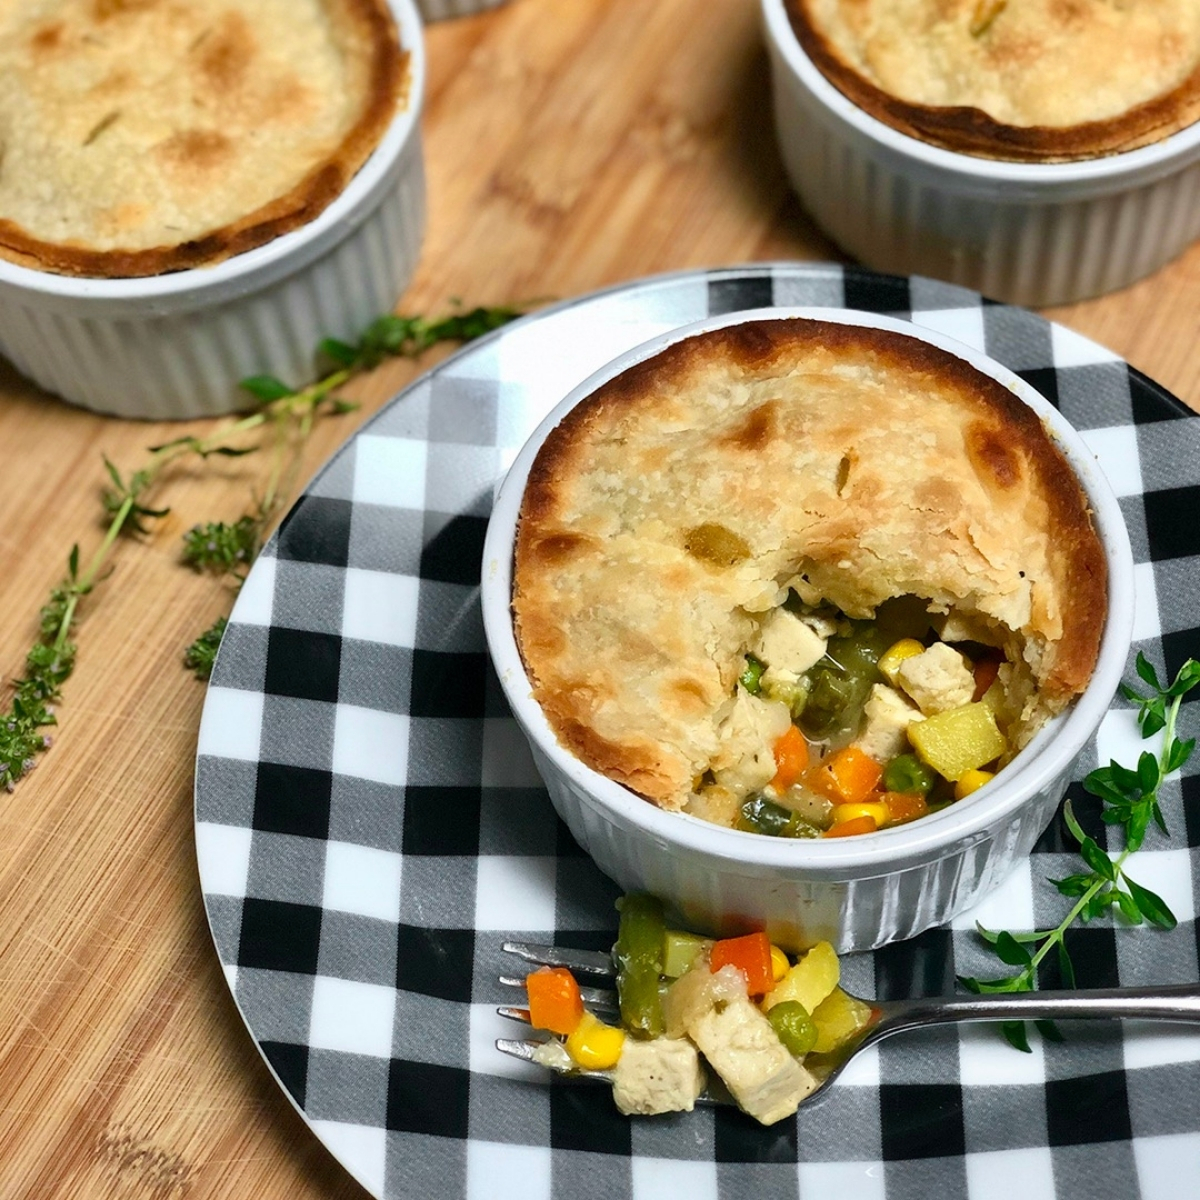 Homemade vegan pot pie with tofu baked inside a white ceramic ramekin and placed on a black and white checkered plate.